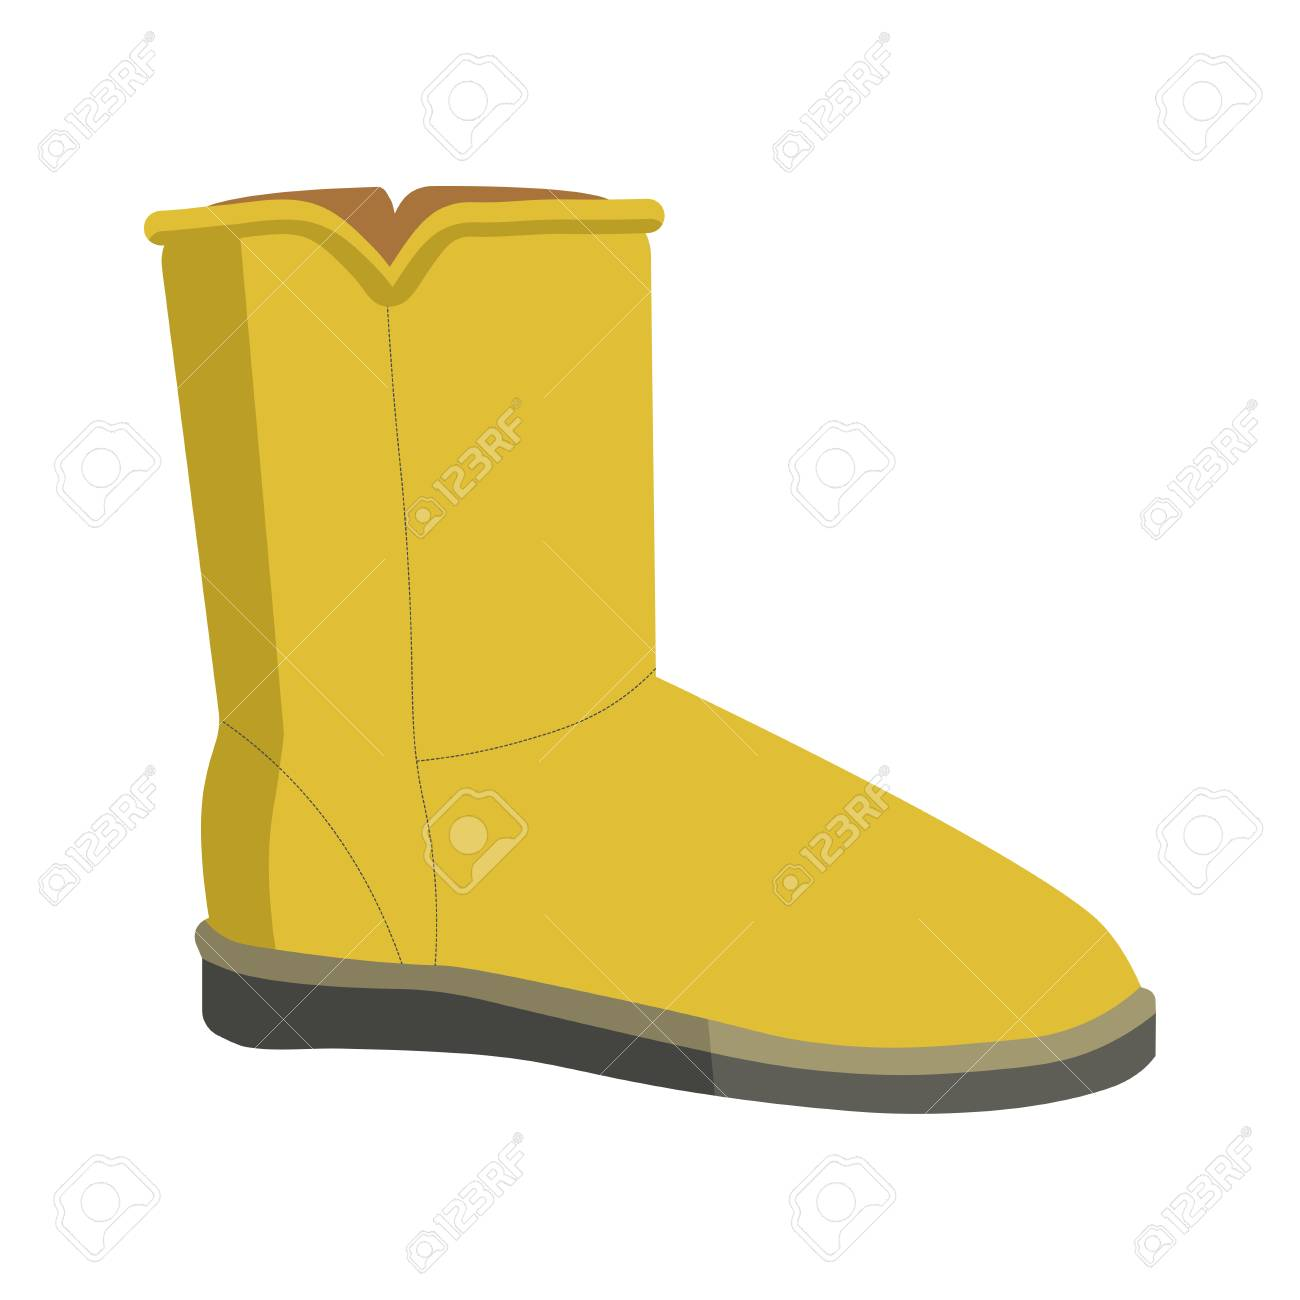 5bfe1dd87e6 Warm winter bright soft ugg boot isolated illustration